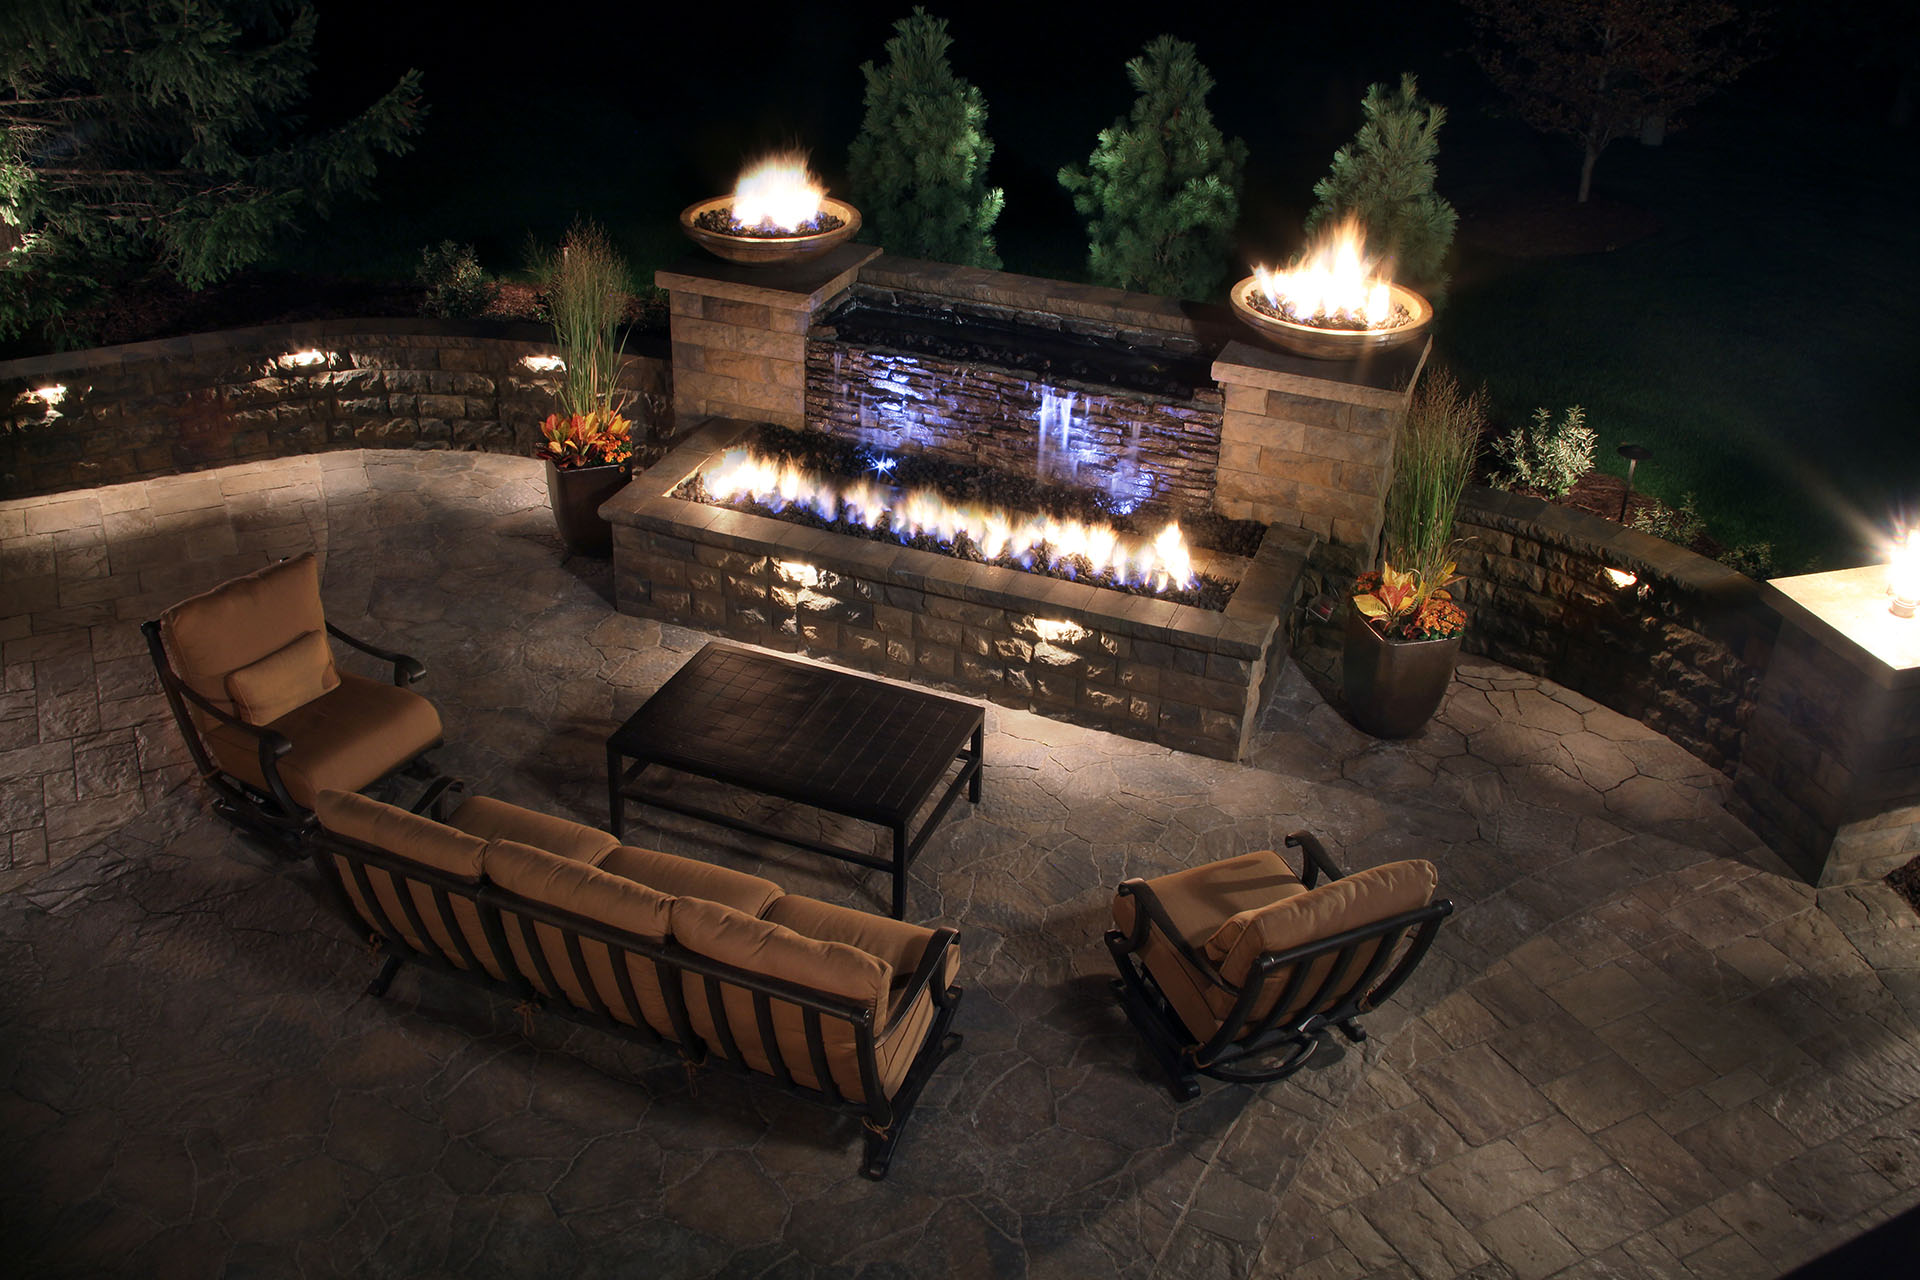 But The Water Fire Feature Is Just A Starting Point For This Patio Which Stretches Out To Encomp An Outdoor Kitchen With Bar Seating And Plenty Of Room